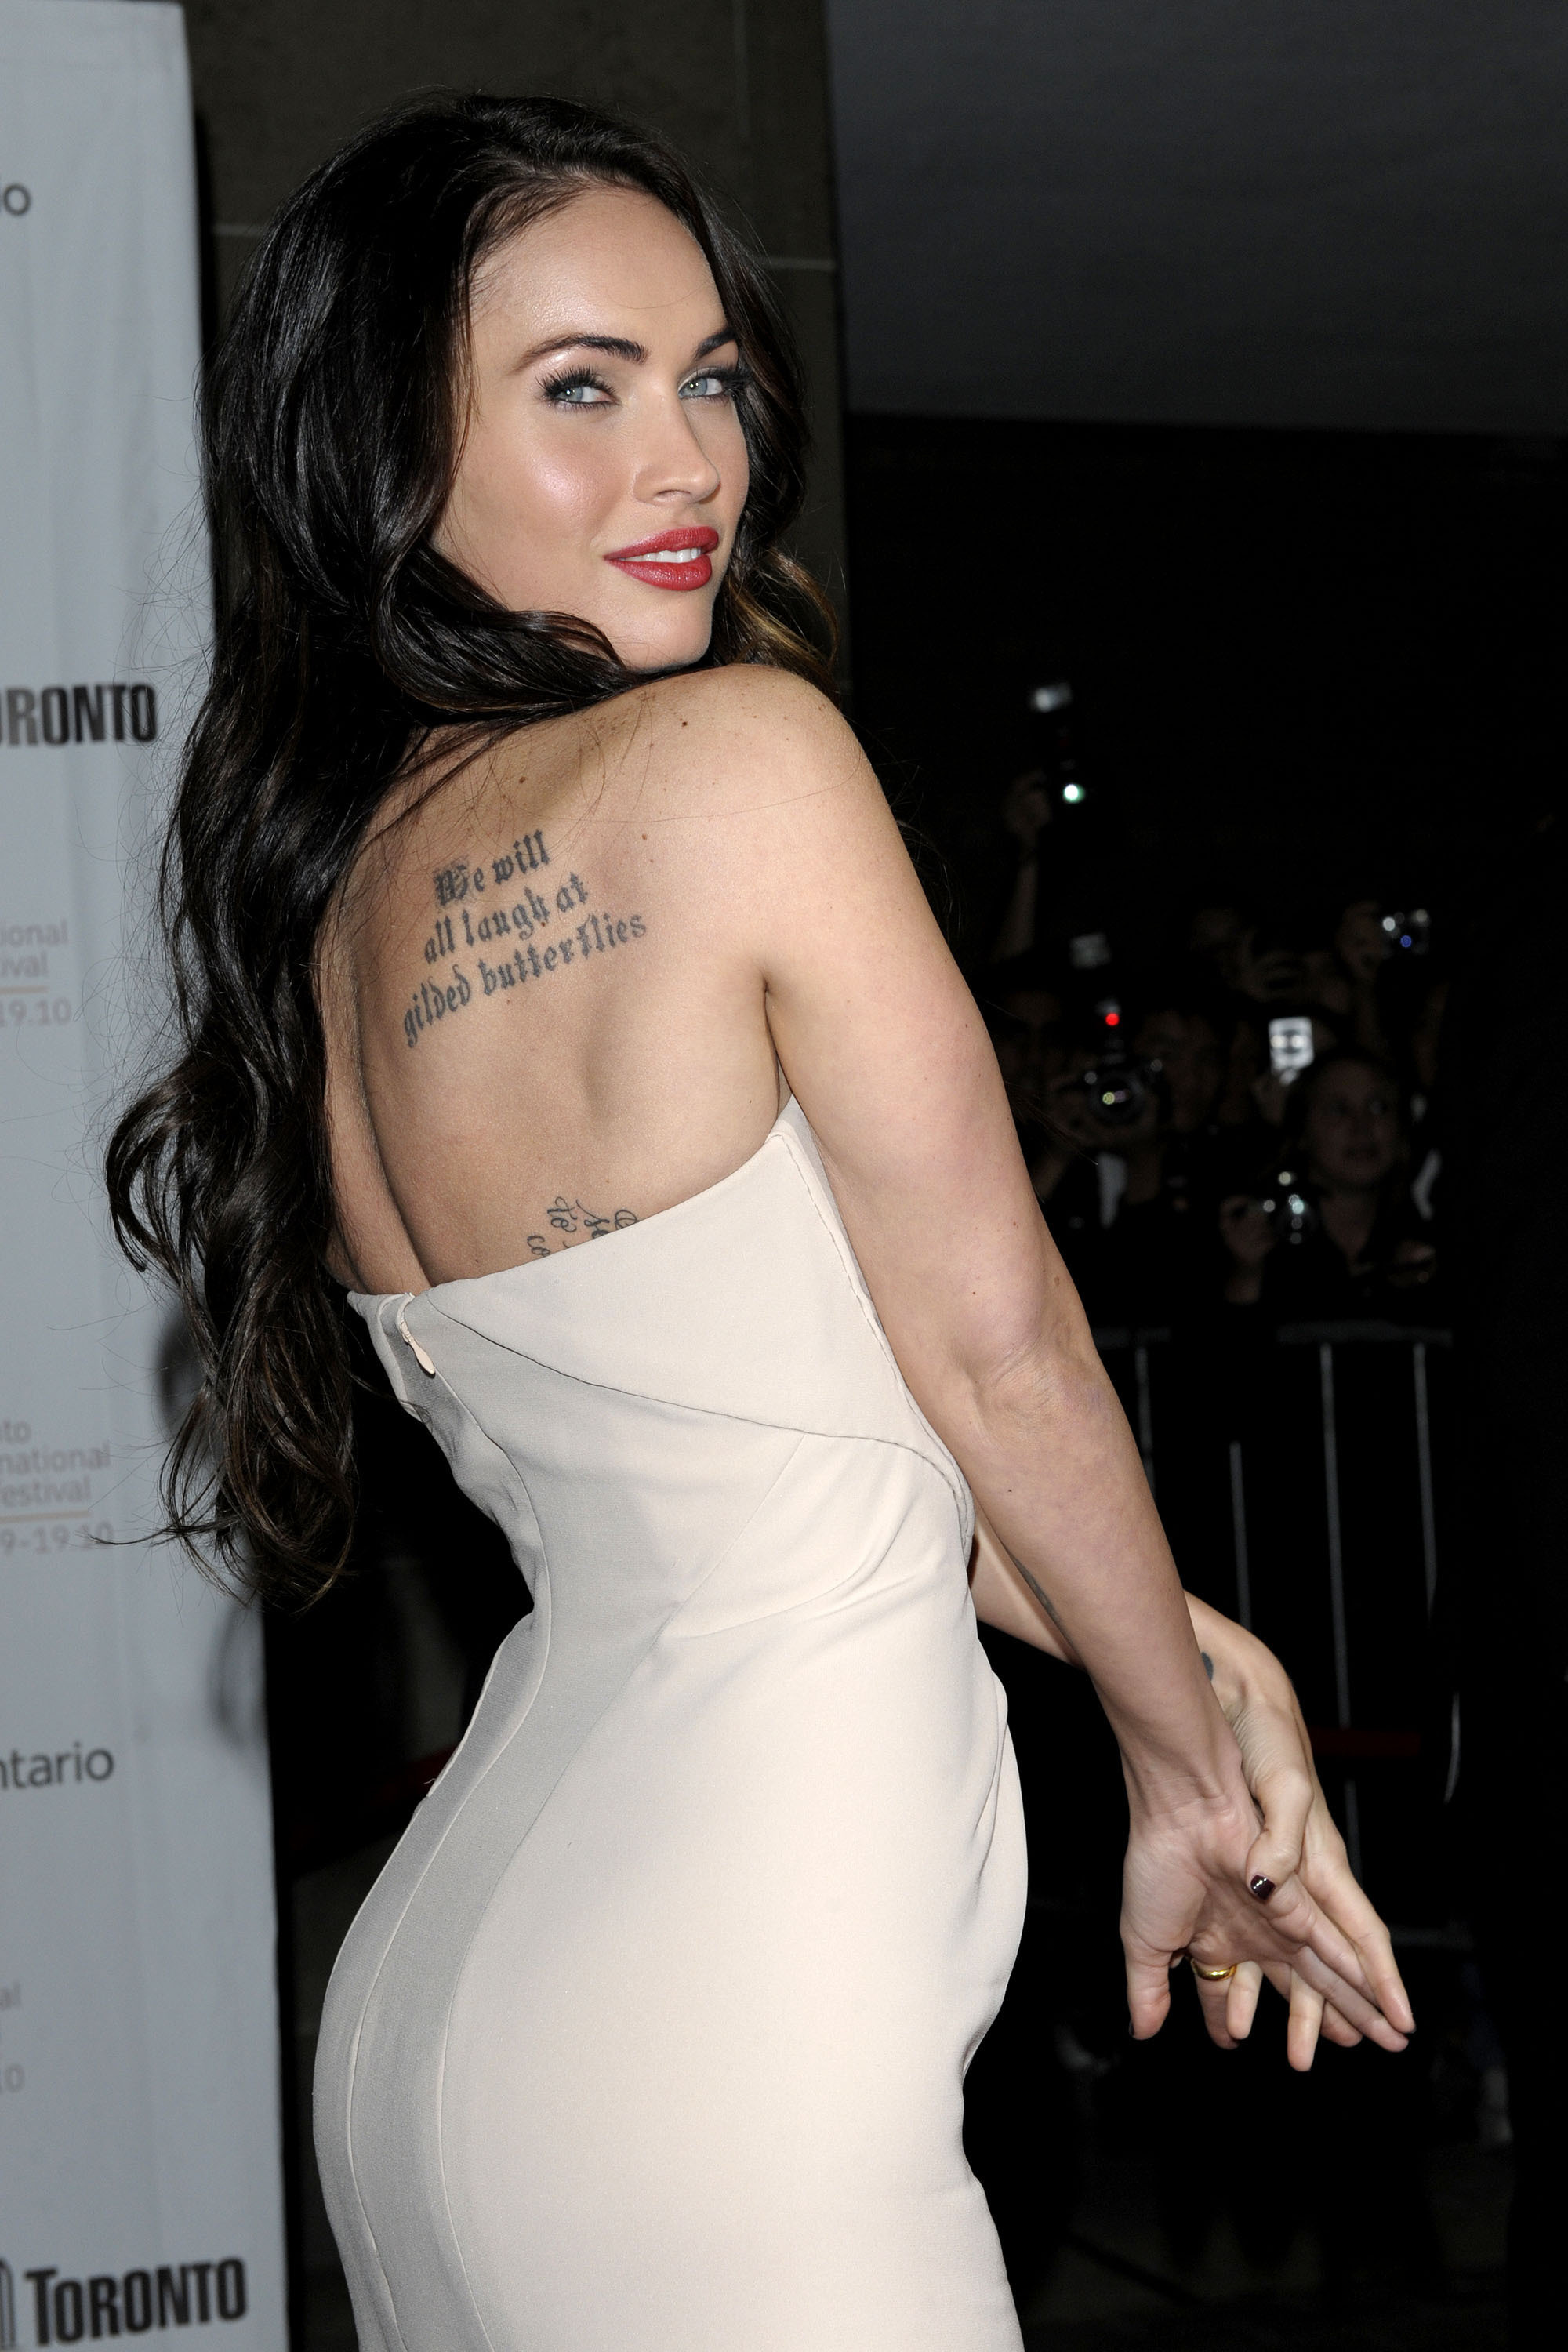 Megan Fox Tattoo - Megan's